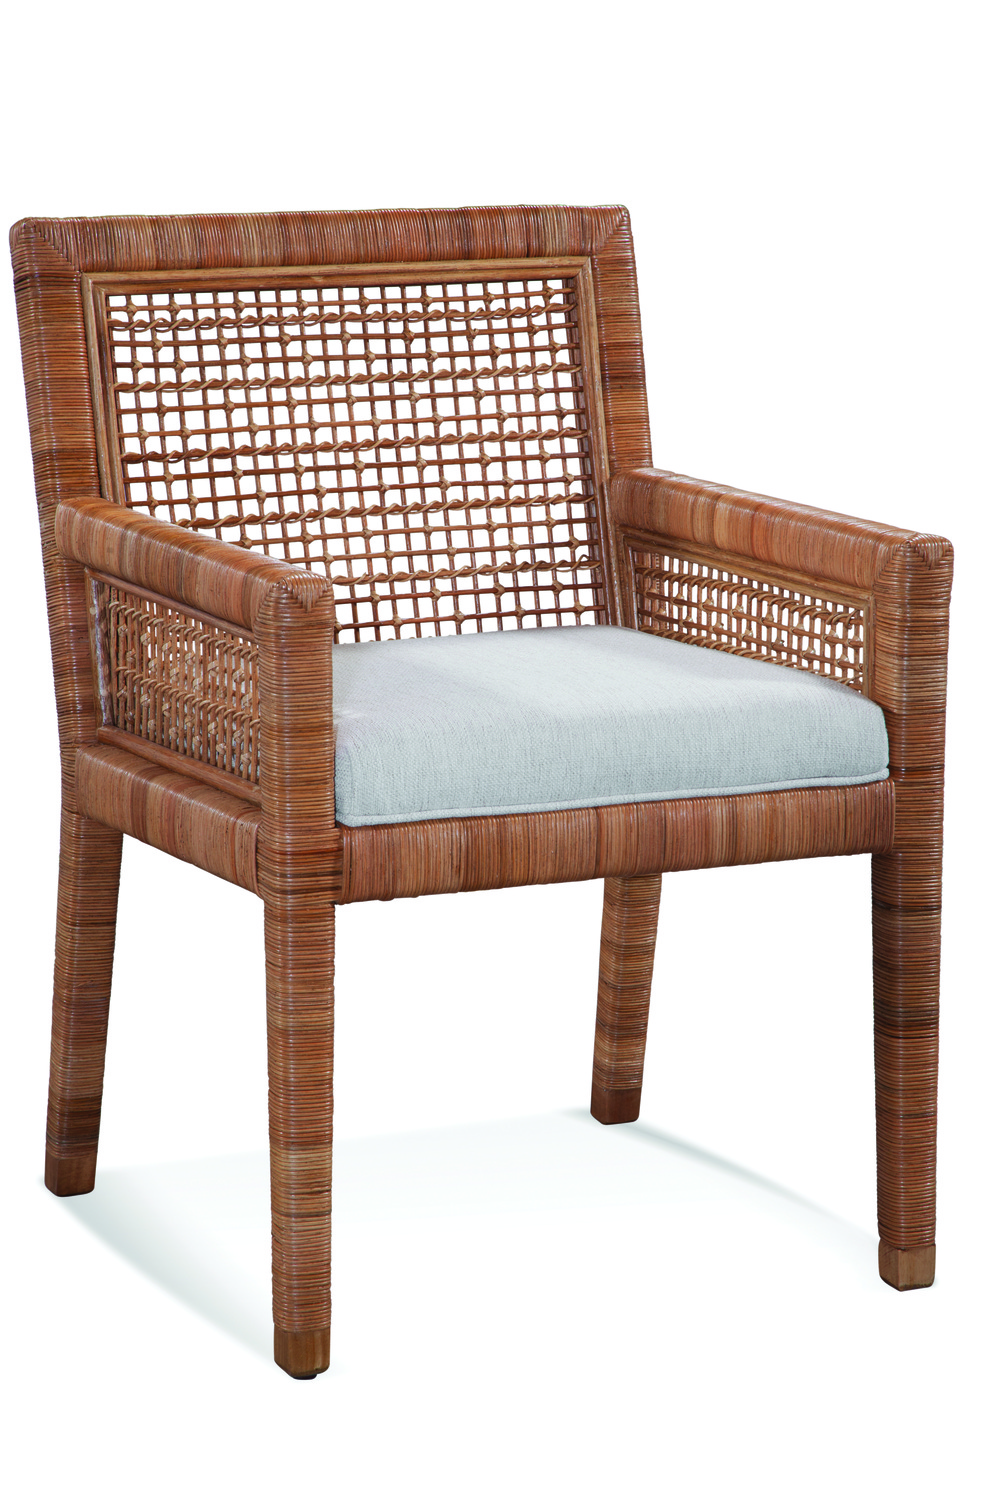 Braxton Culler - Pine Isle Arm Chair